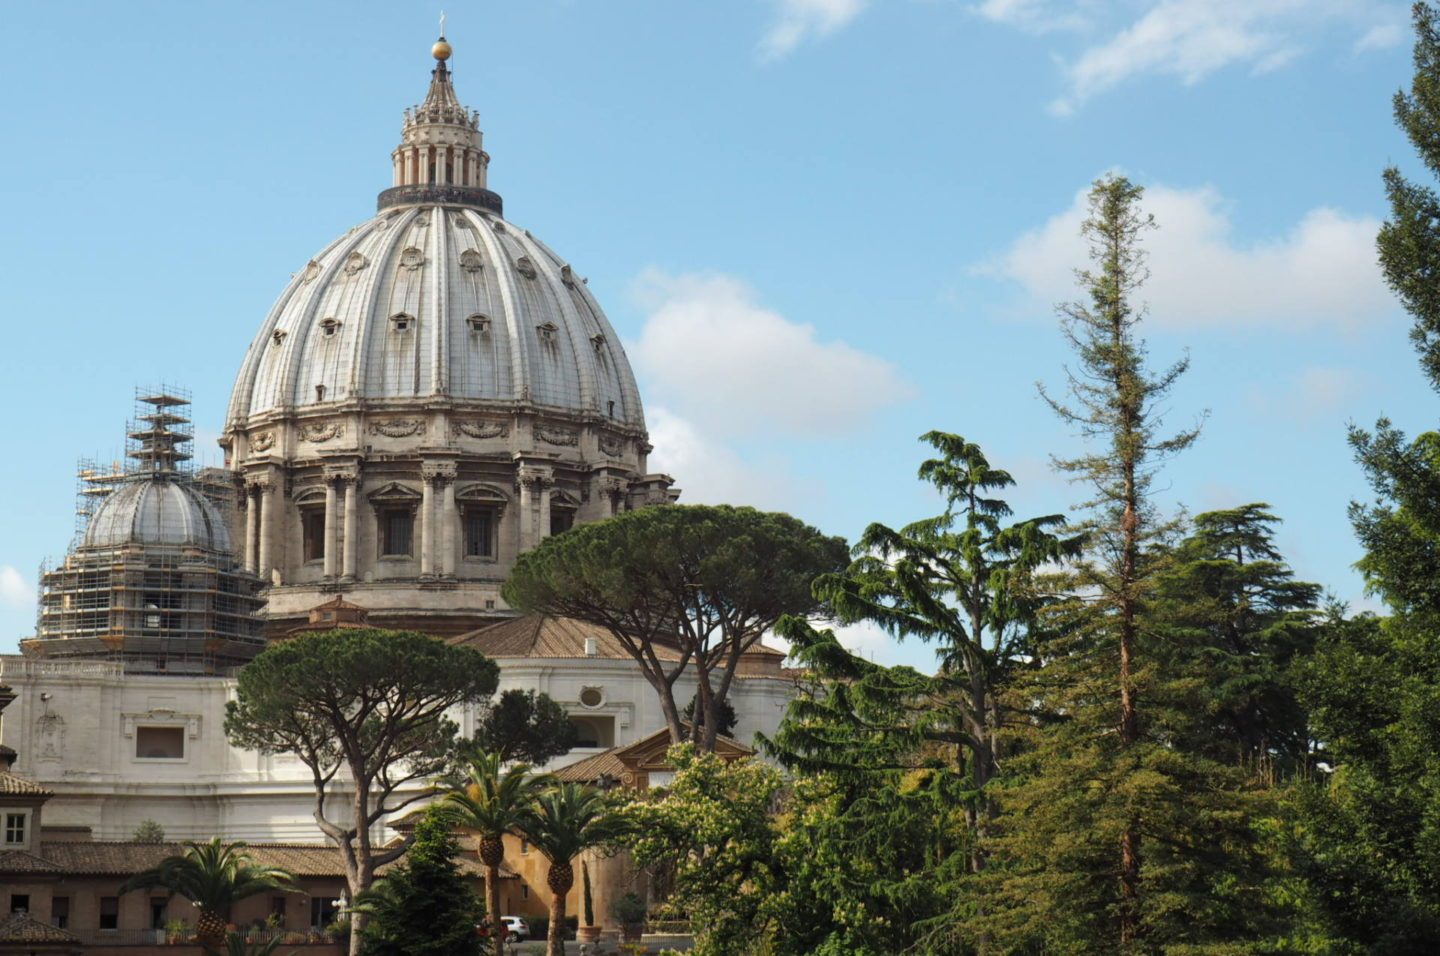 Emma-Victoria-Stokes-The-Roman-Guy-Blogger-Tour-Vatican